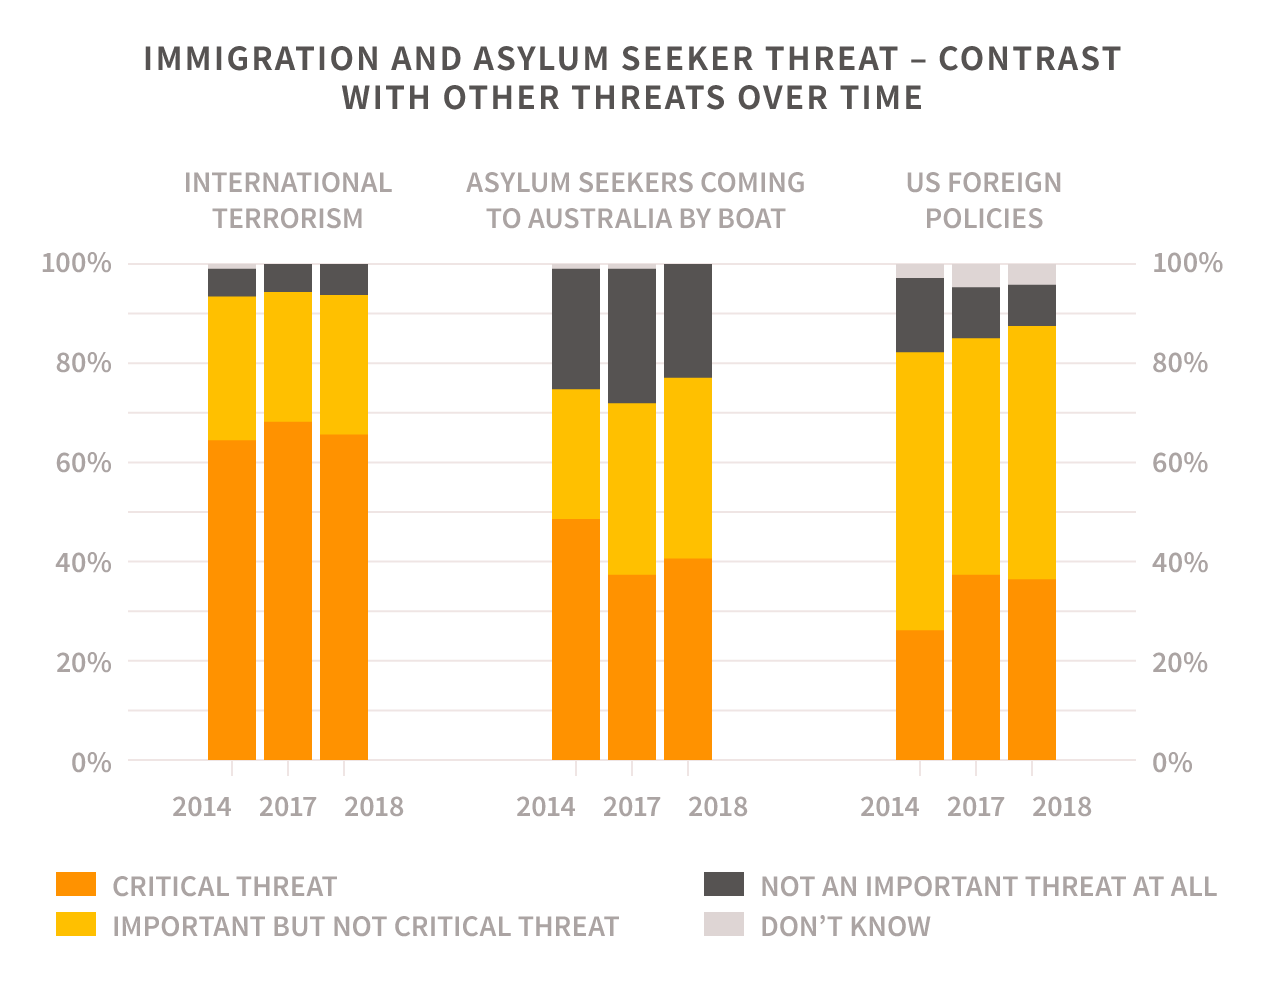 IMMIGRATION AND ASYLUM SEEKER THREAT – CONTRAST WITH OTHER THREATS OVER TIME